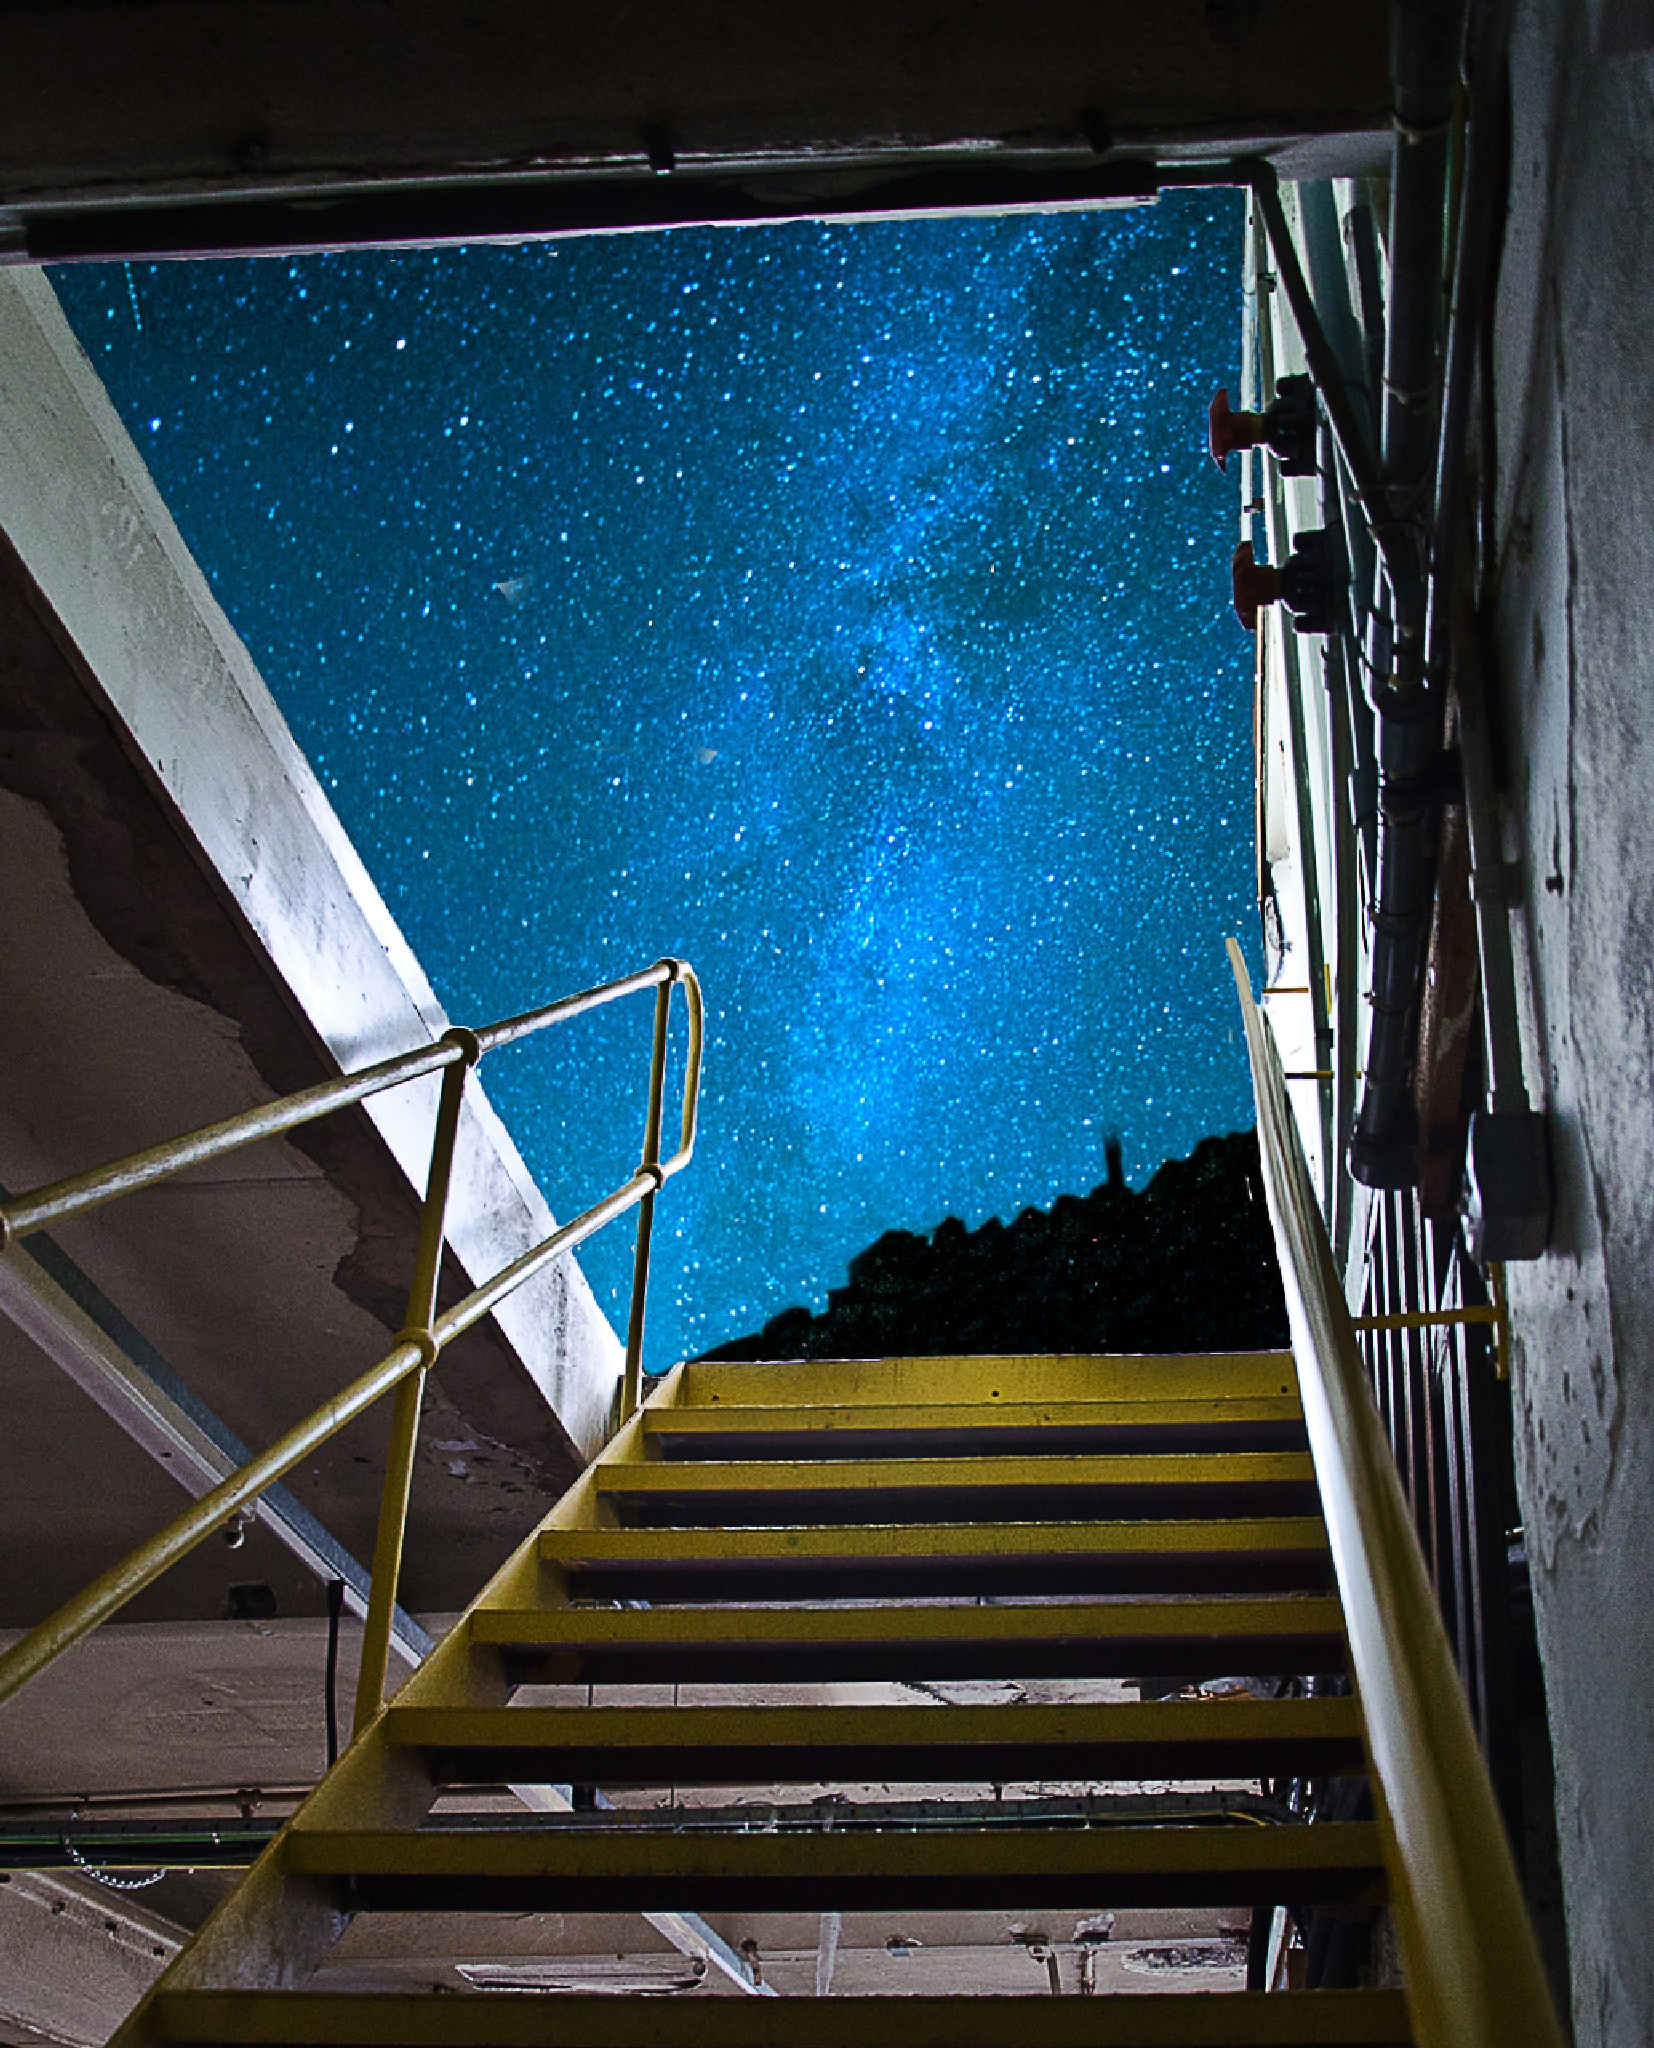 Stars above the trap door by MrBpix